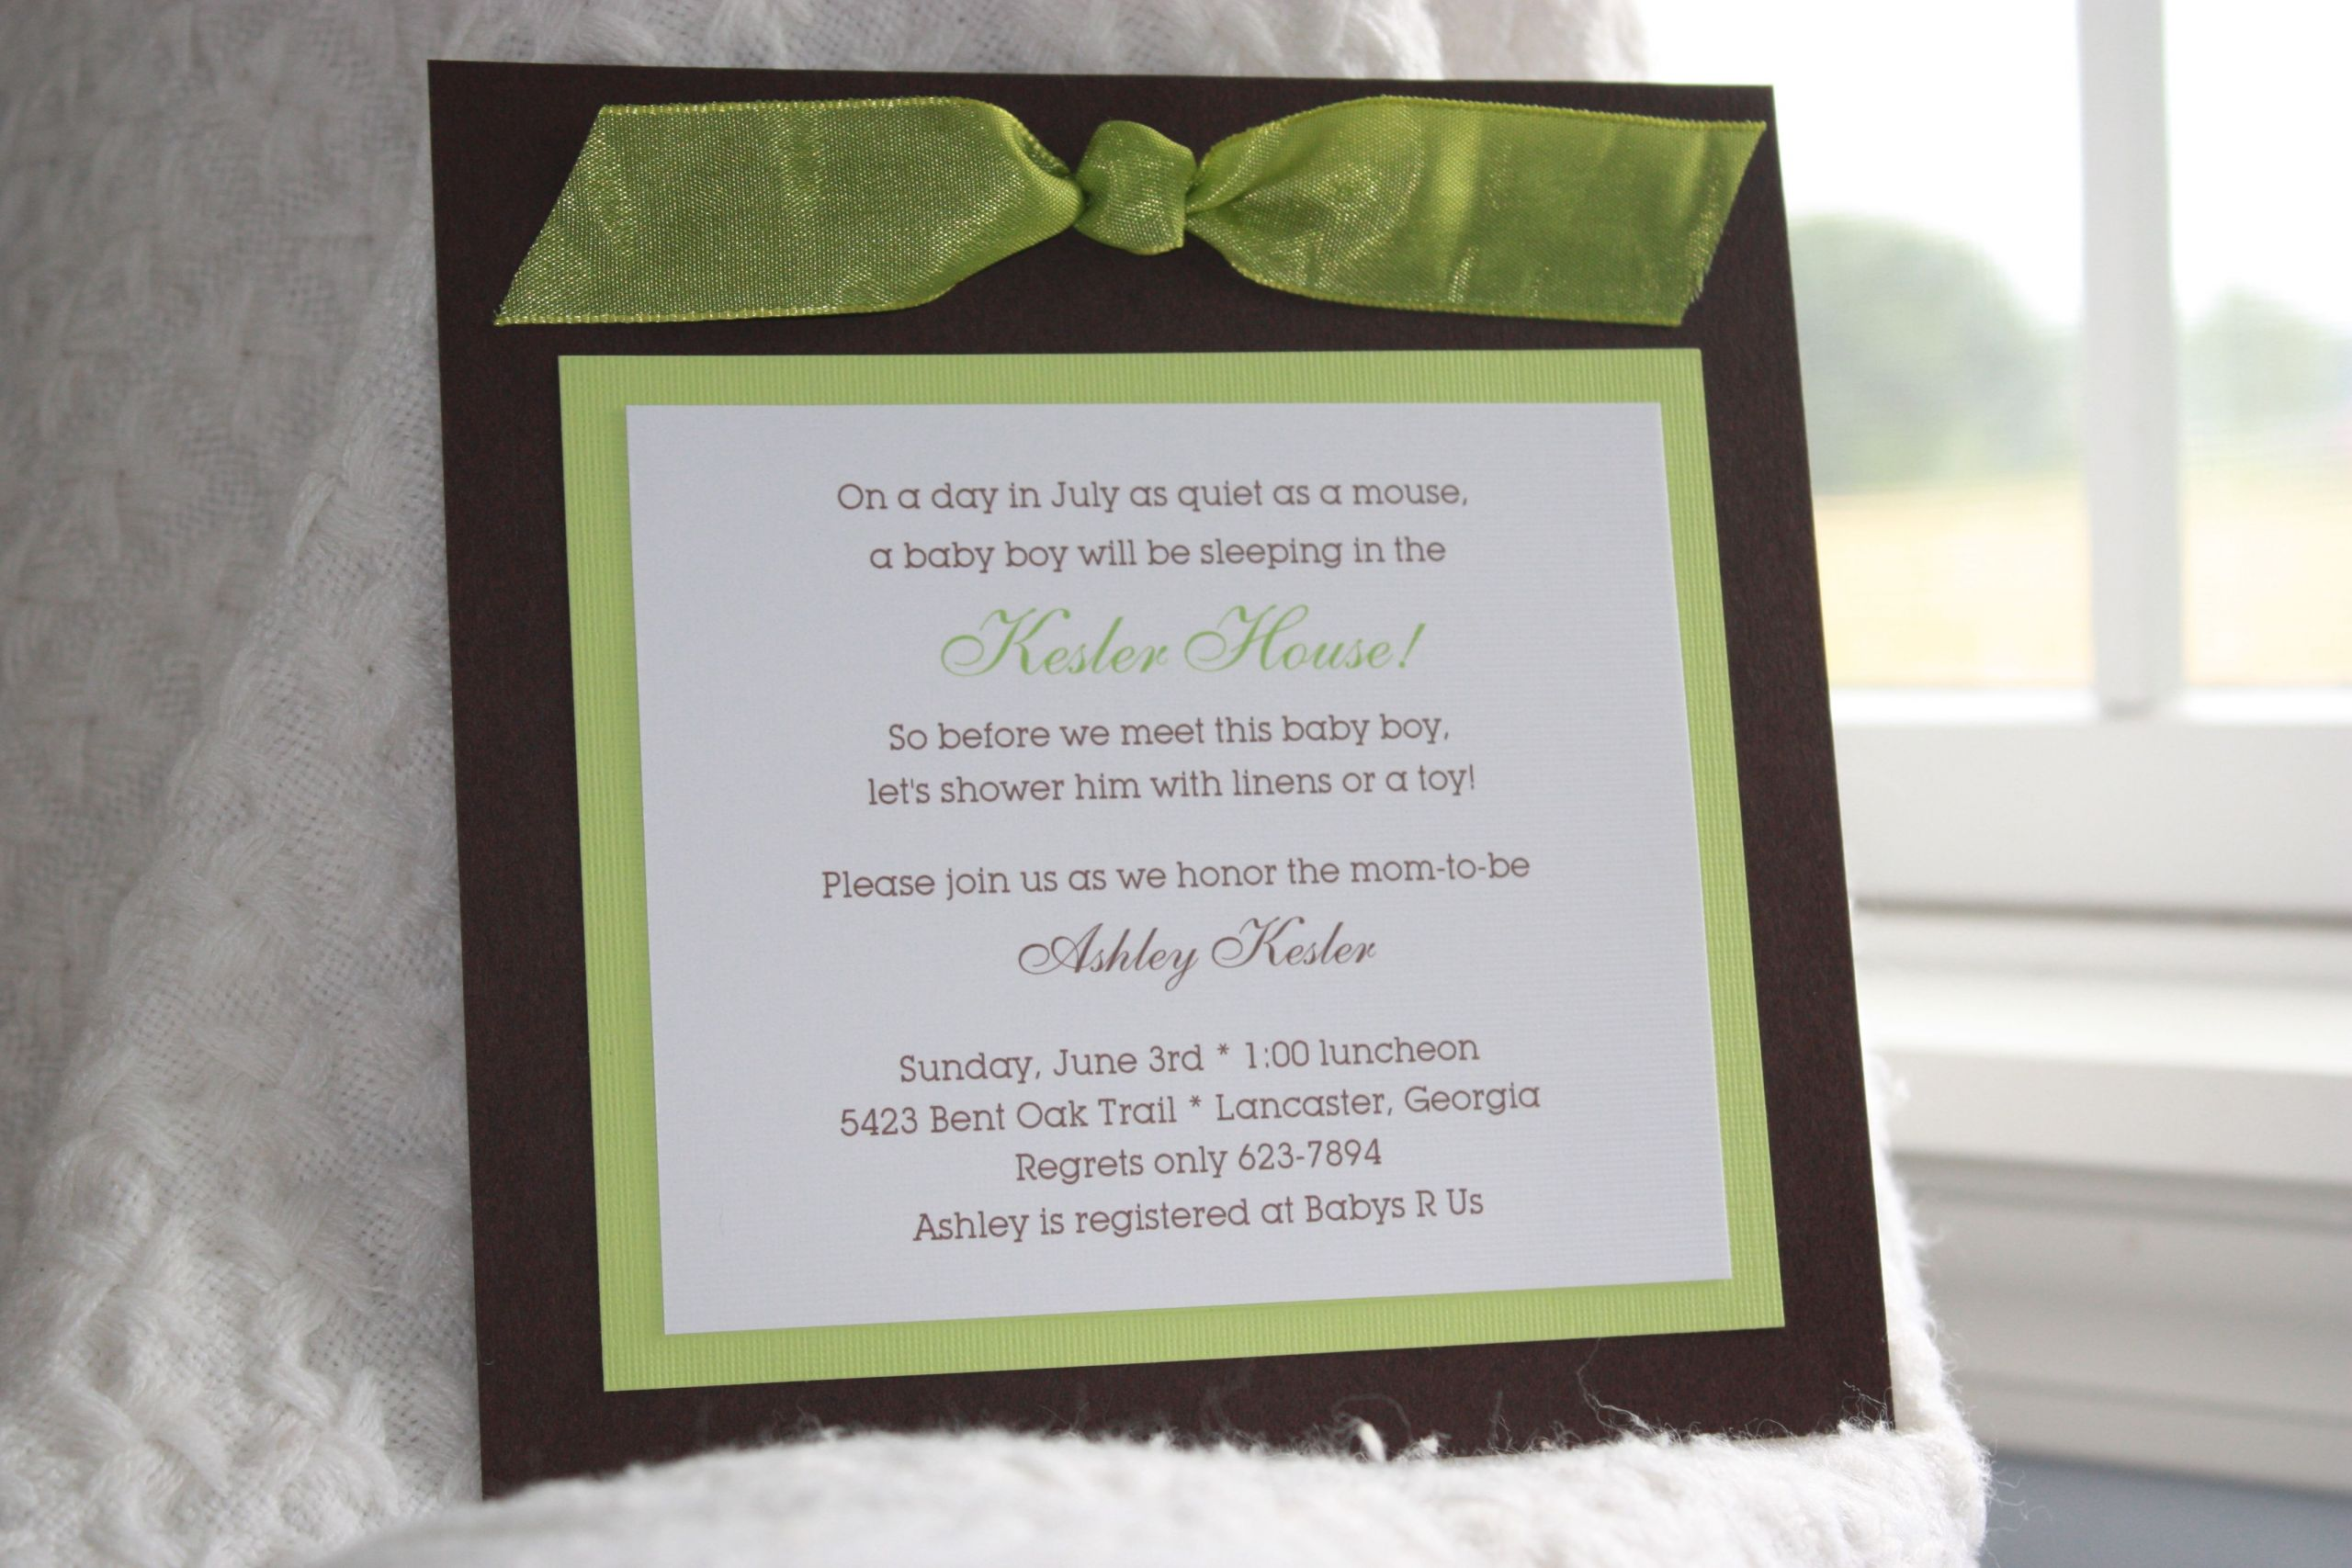 Diy Baby Shower Invitations Kits  diy bridal shower invitations